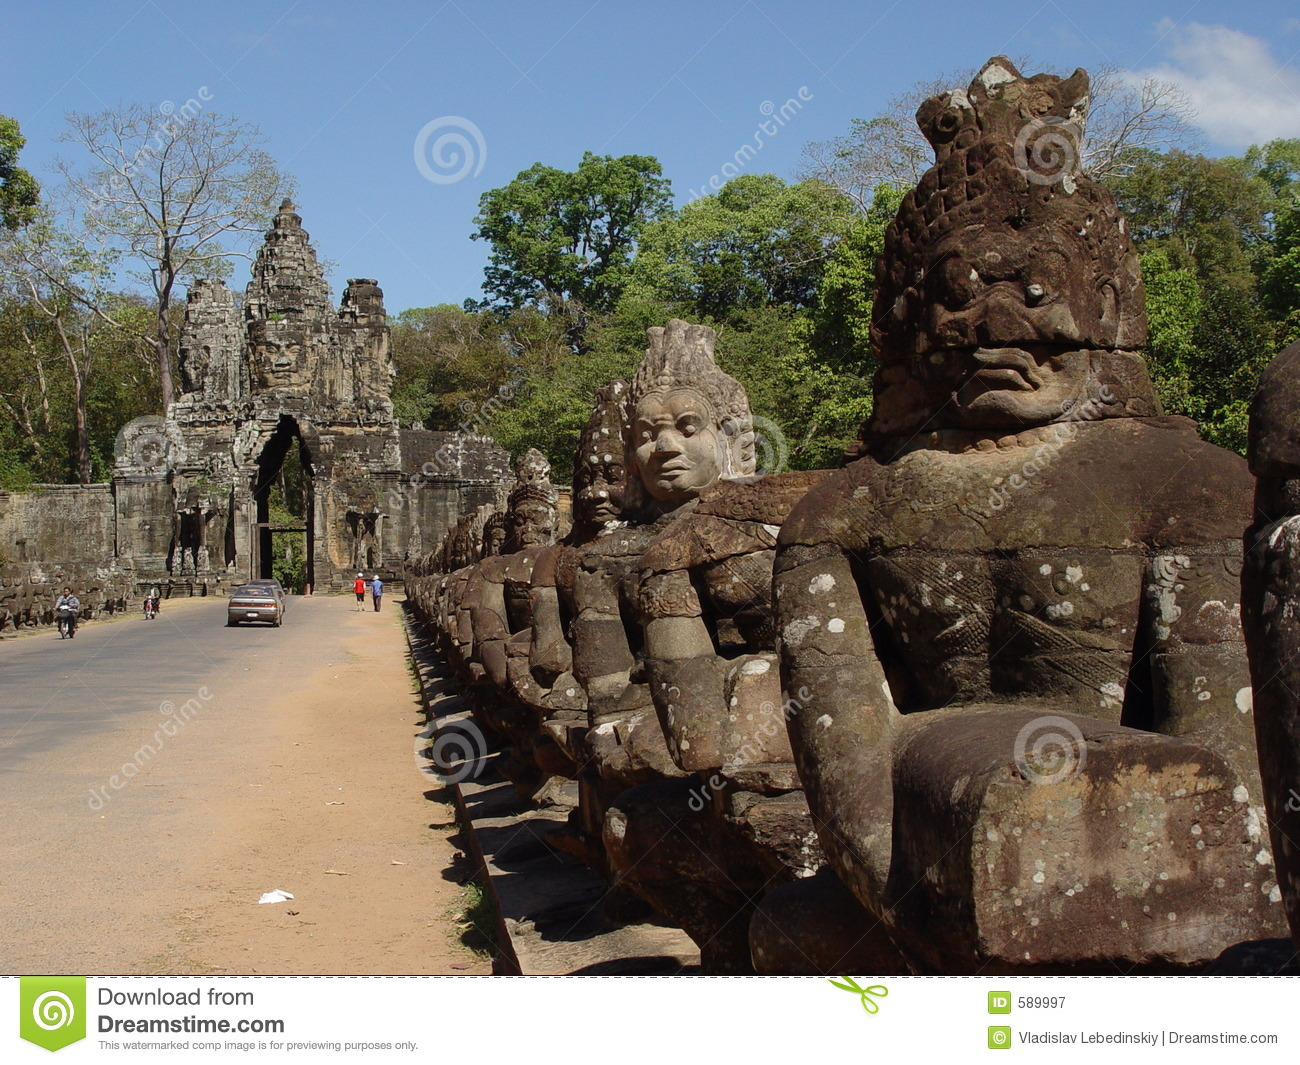 Face Statues in Angor Wat